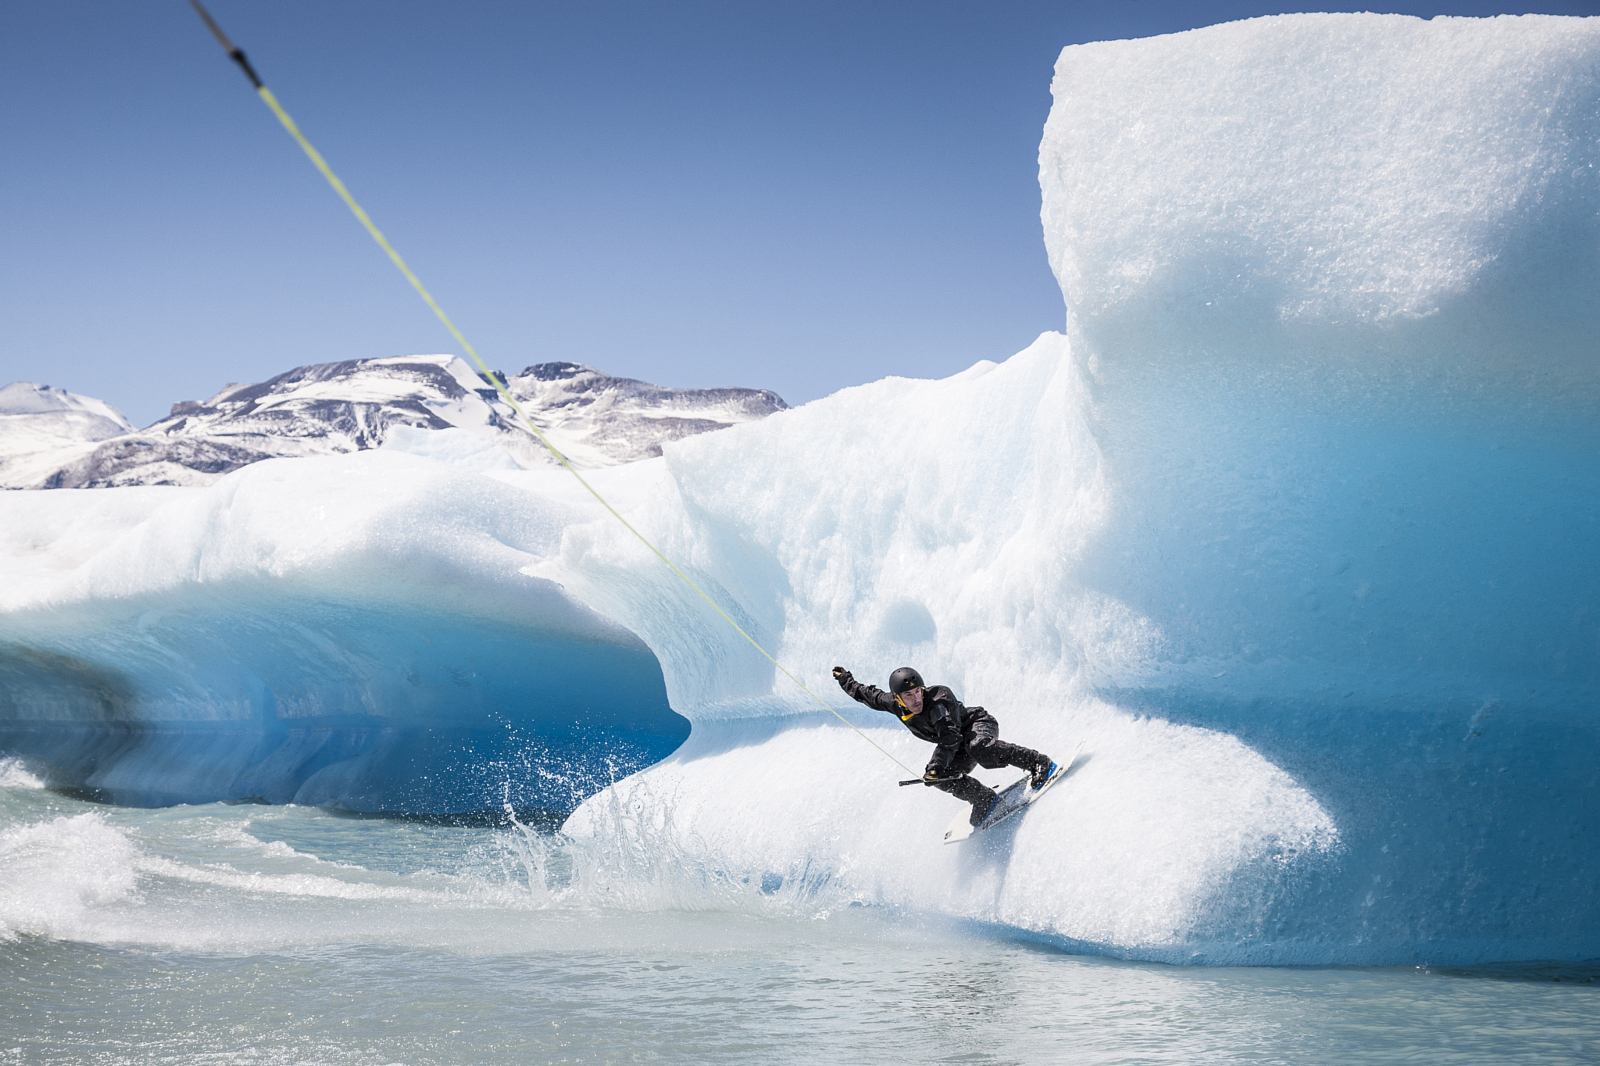 25 Cold-Weather Action Photos That Will Make You Miss Winter